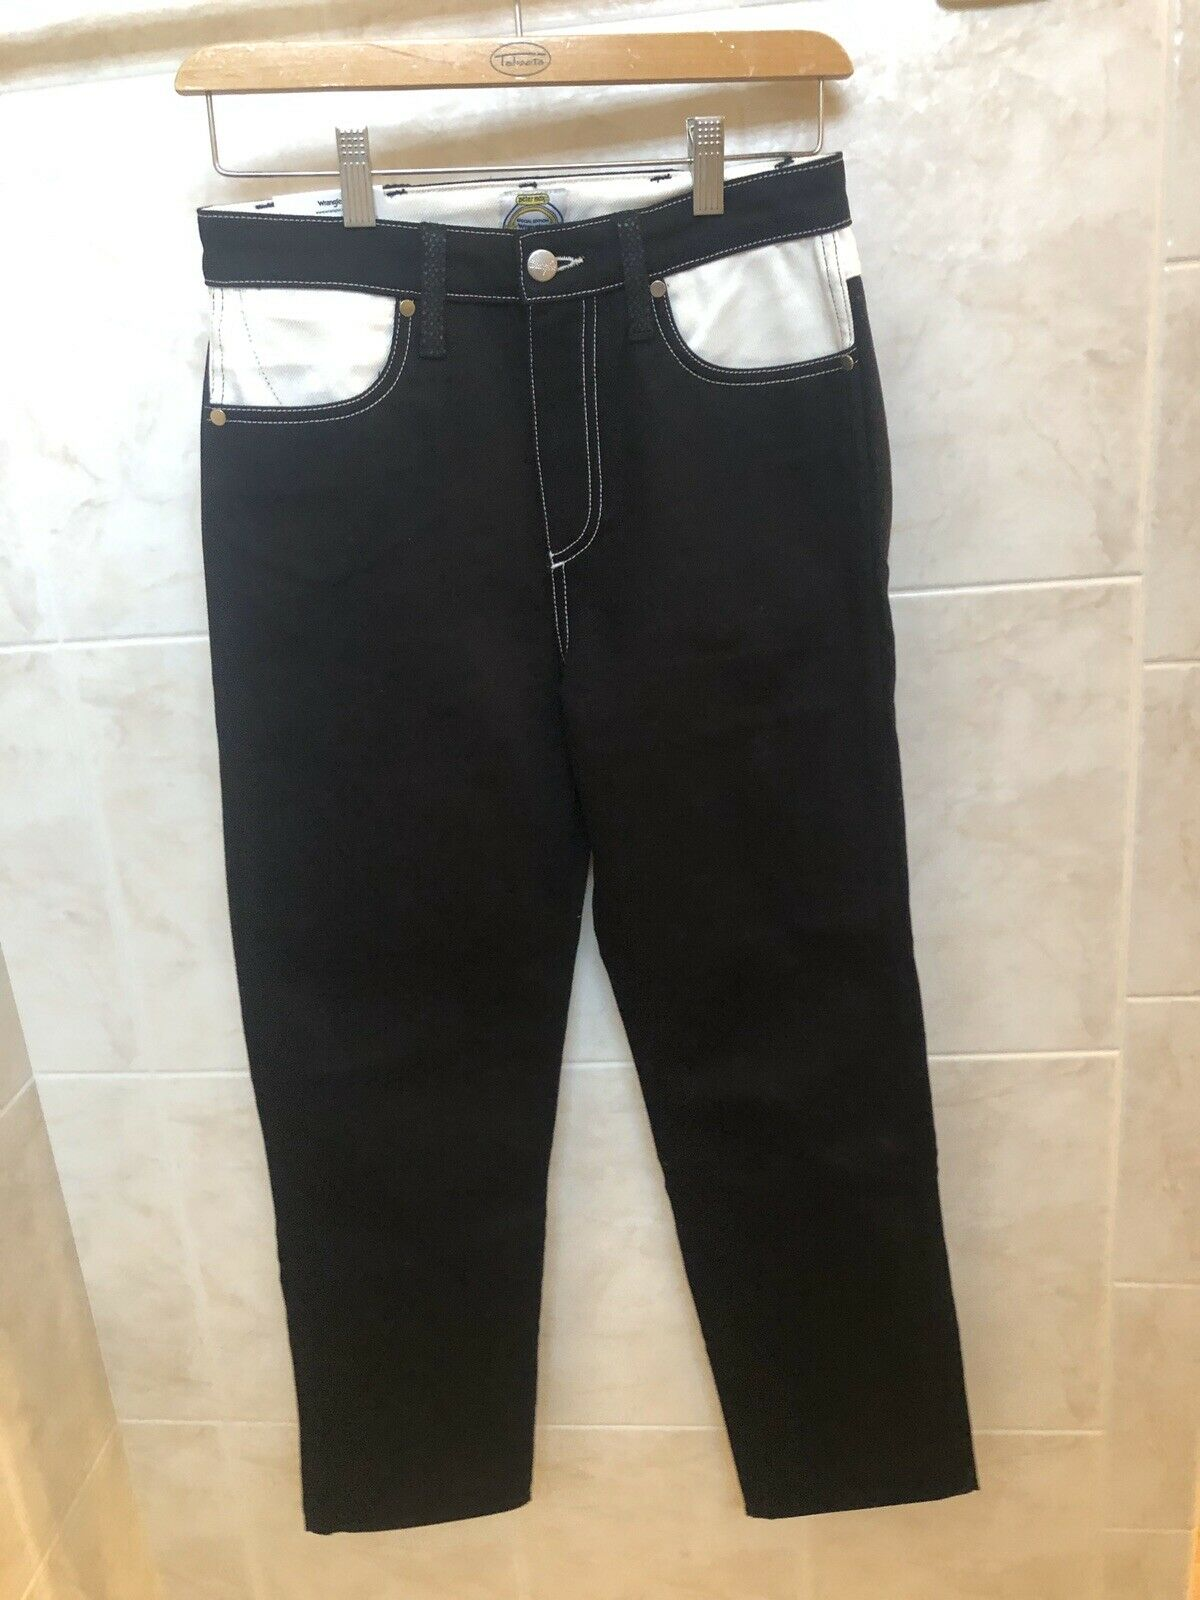 Blue WRANGLER Men/'s PETER MAX Special Edition Straight Leg Jeans size W28